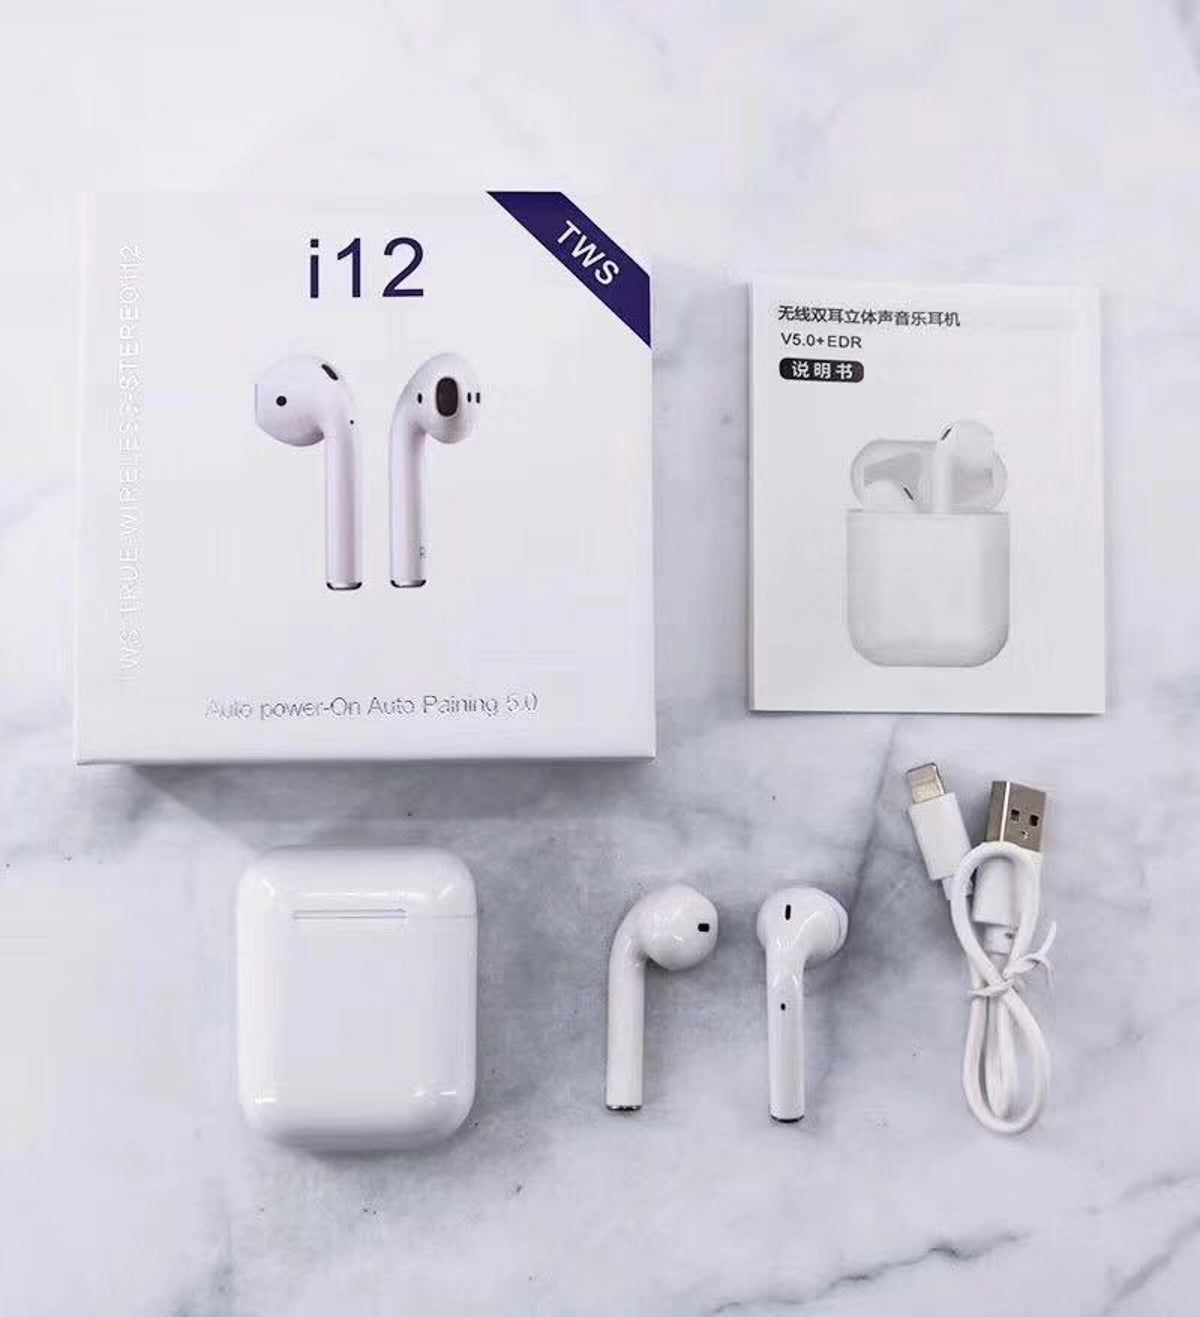 Iphone Headphones Iphone Headphones Apple Iphone Earbuds